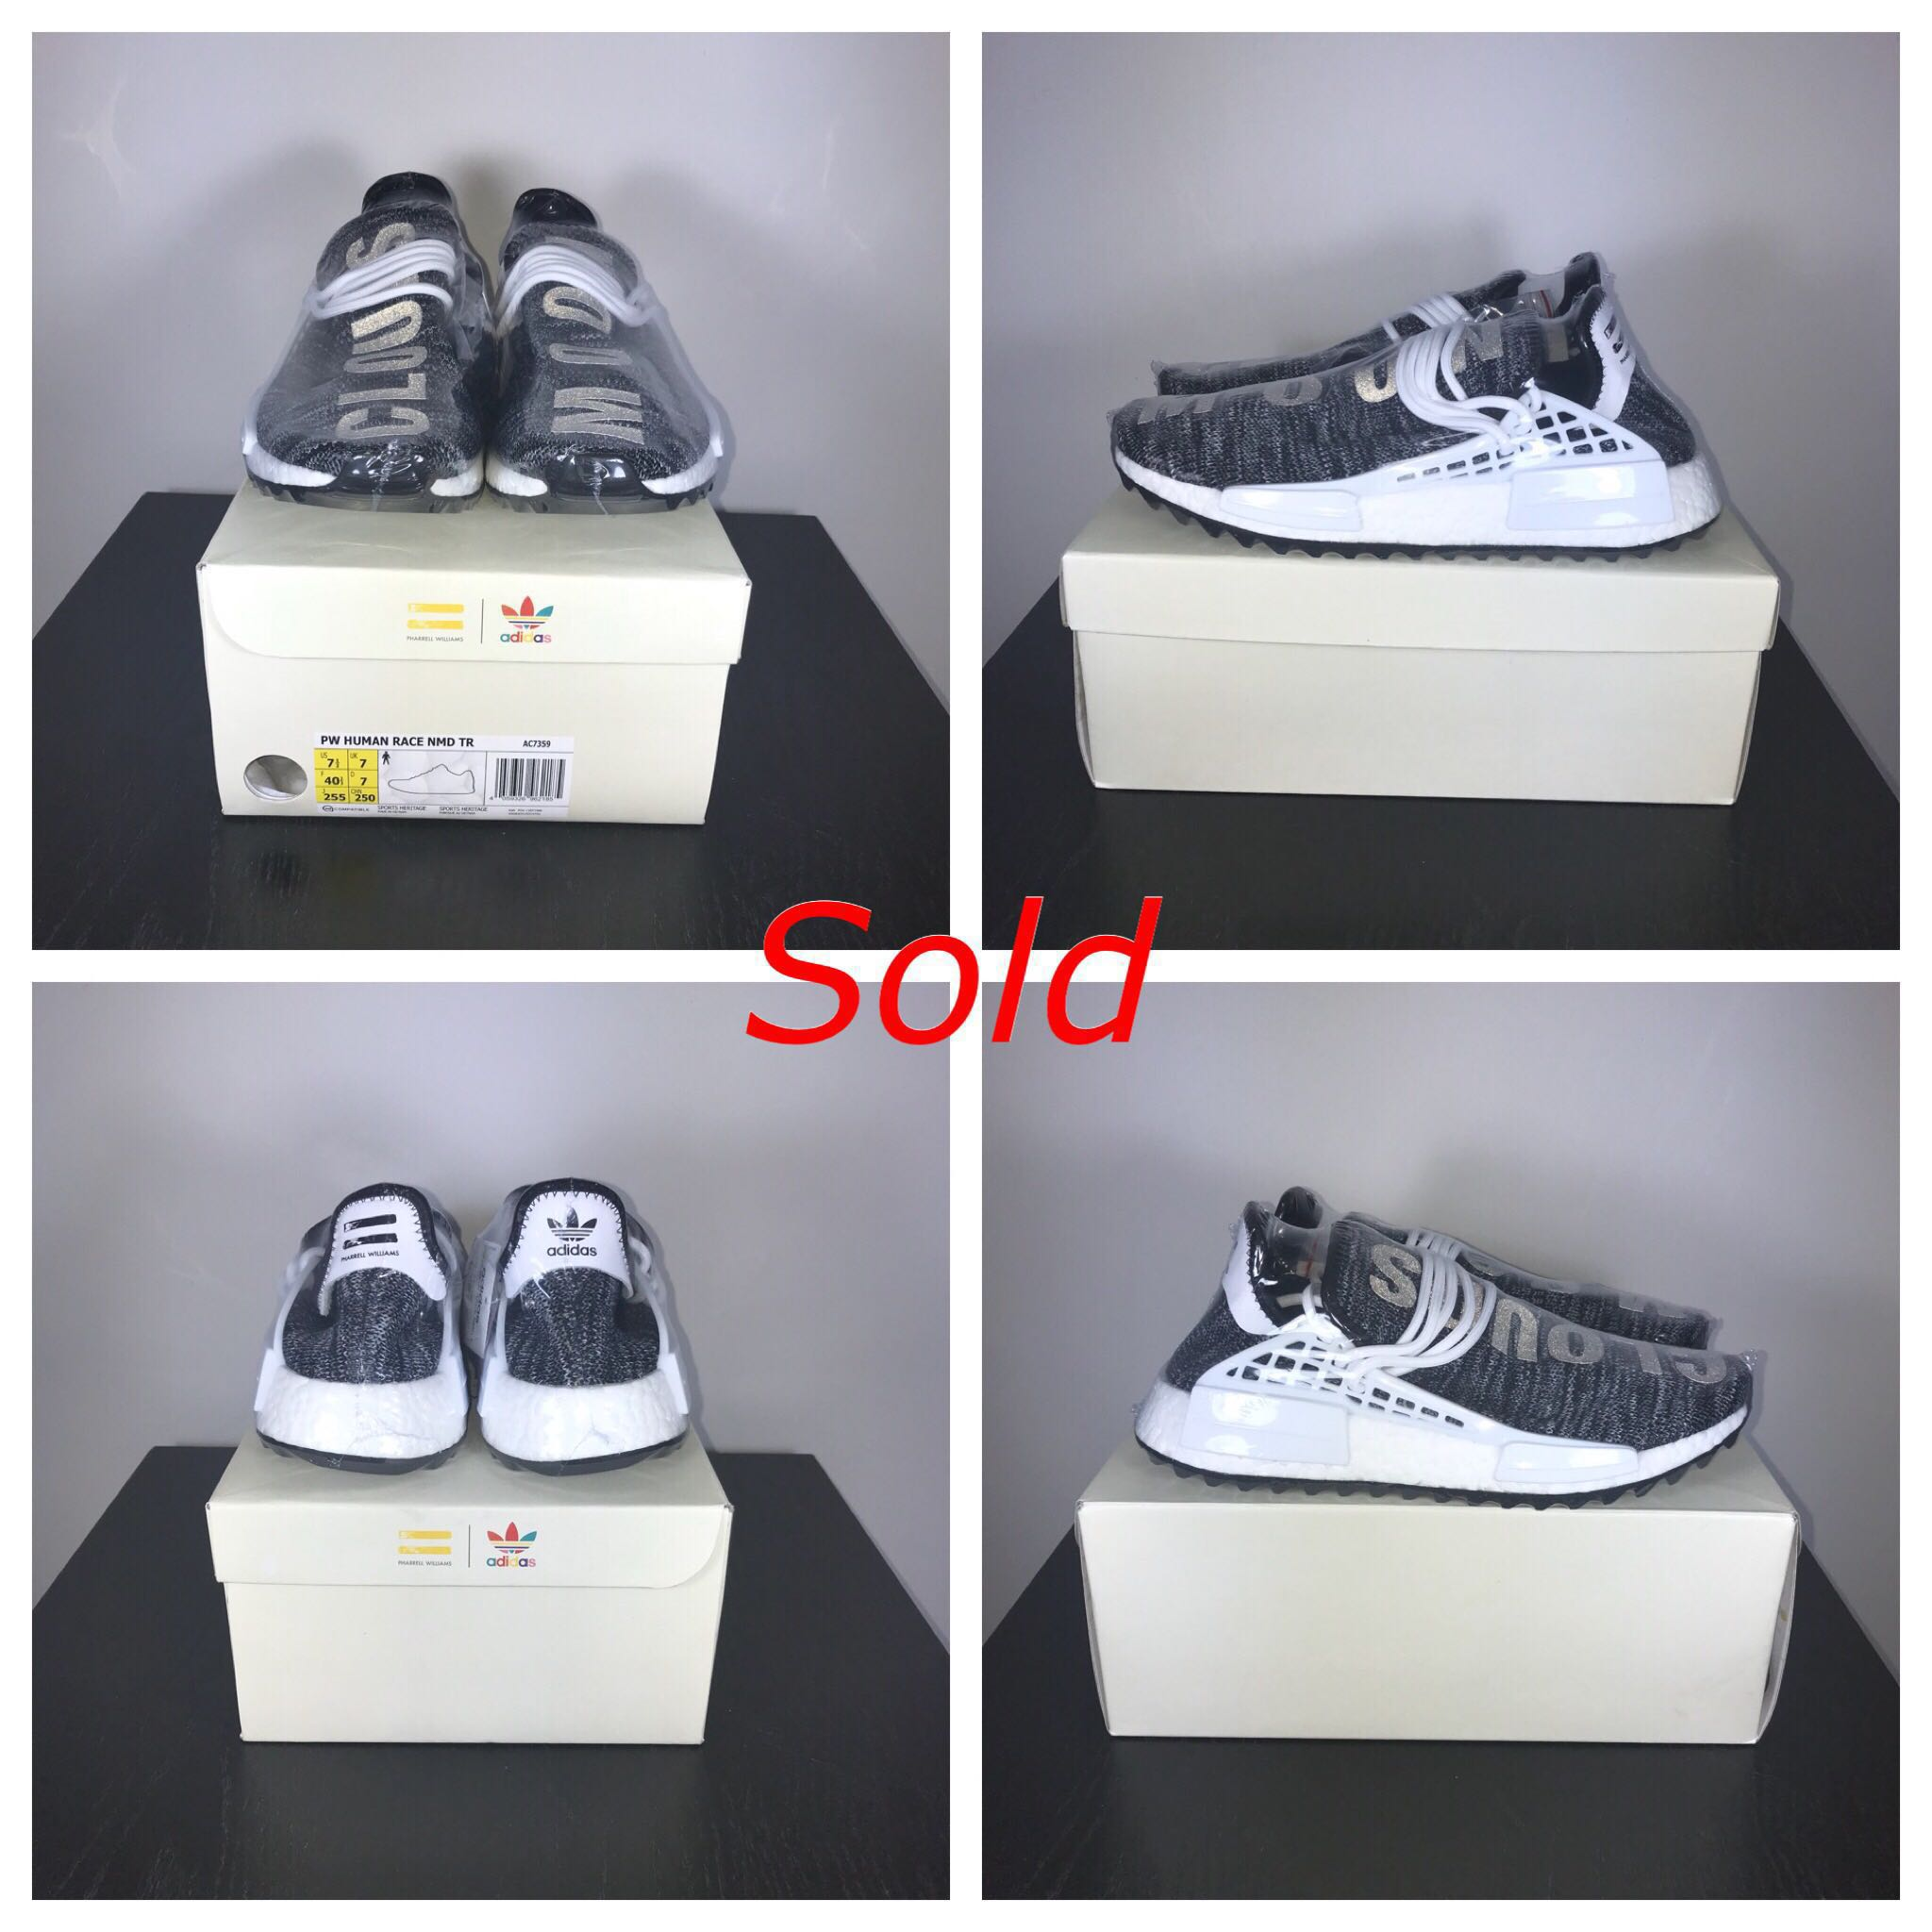 3603f56ded094 Adidas - Ultra Boost Wood Wood KITH ATR NMD PW TR Pale Nude Oreo  Speedfactory AM4LA UK 7.5 - 8 US